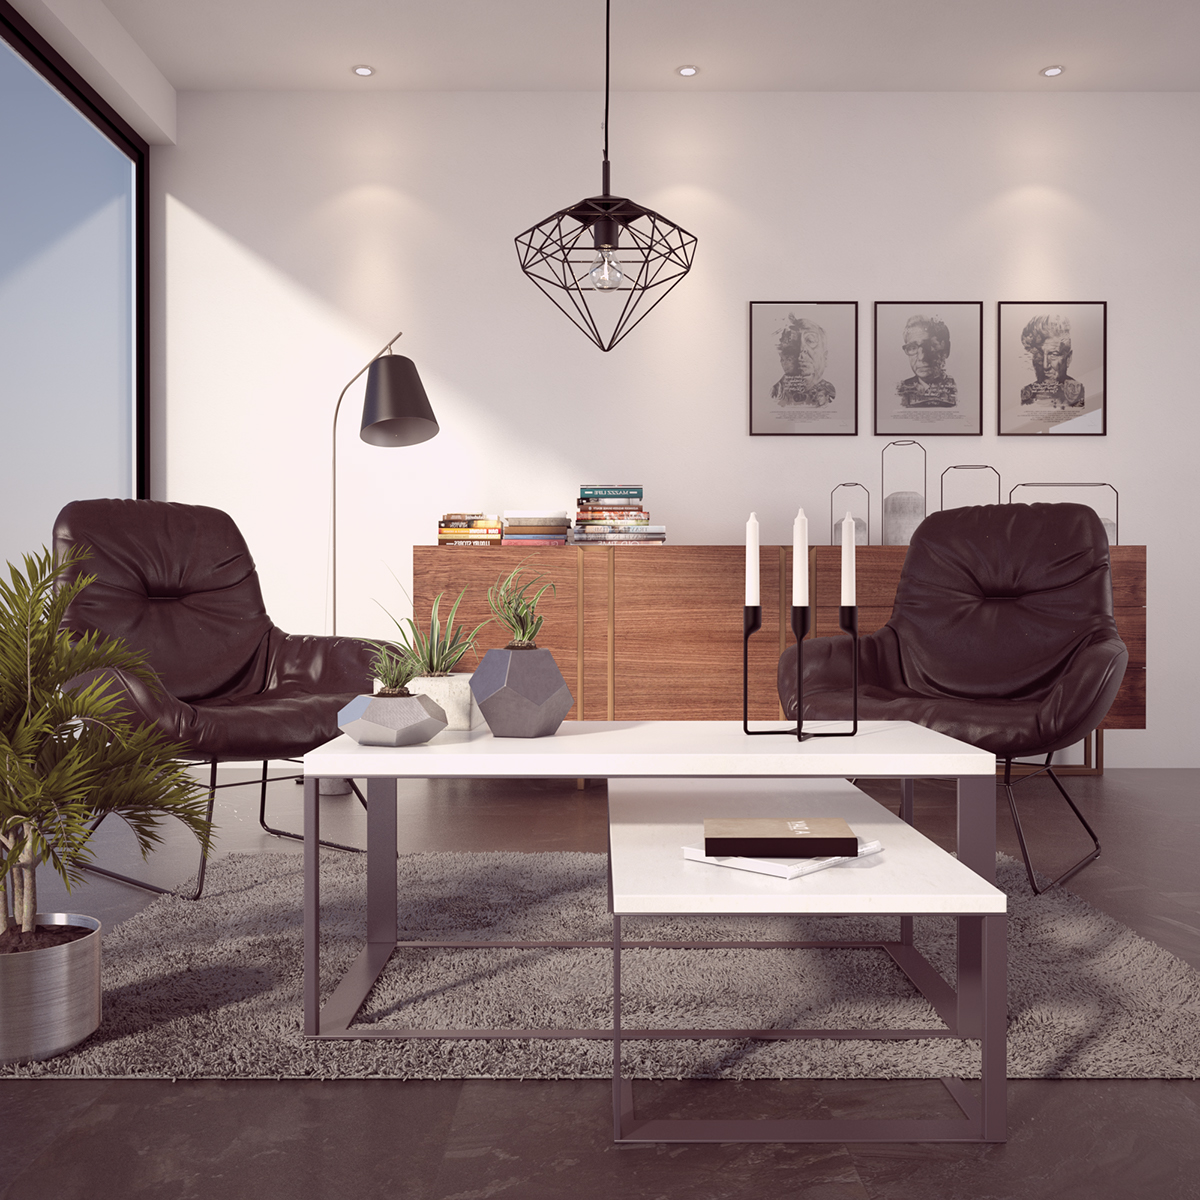 Free 3d model interior vray 3ds max on behance for Room layout designer free